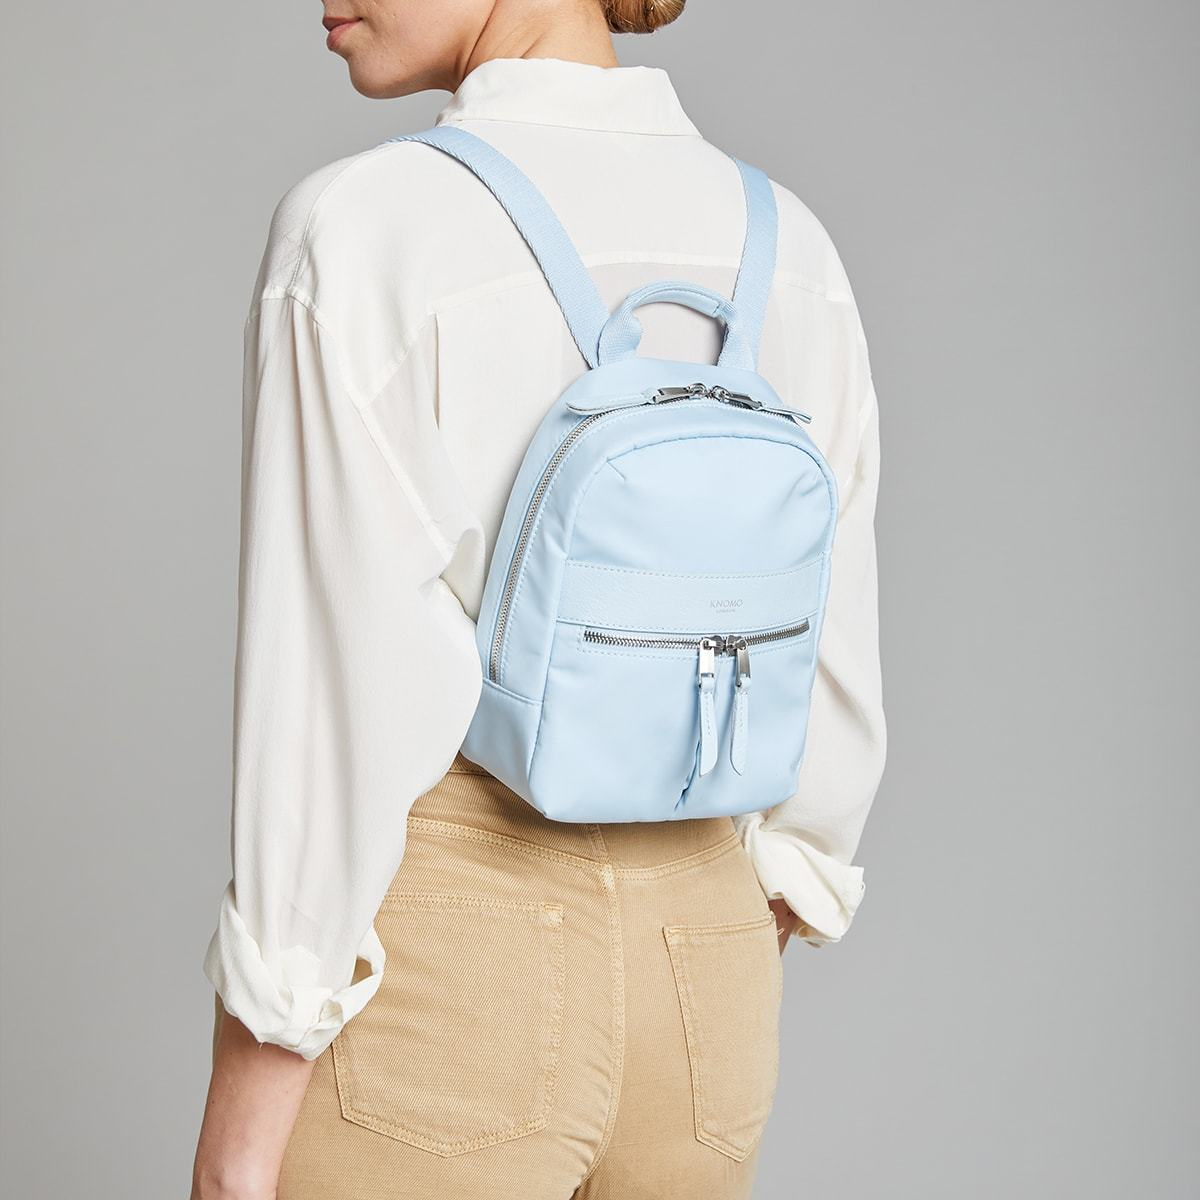 Beauchamp XS Backpack 8